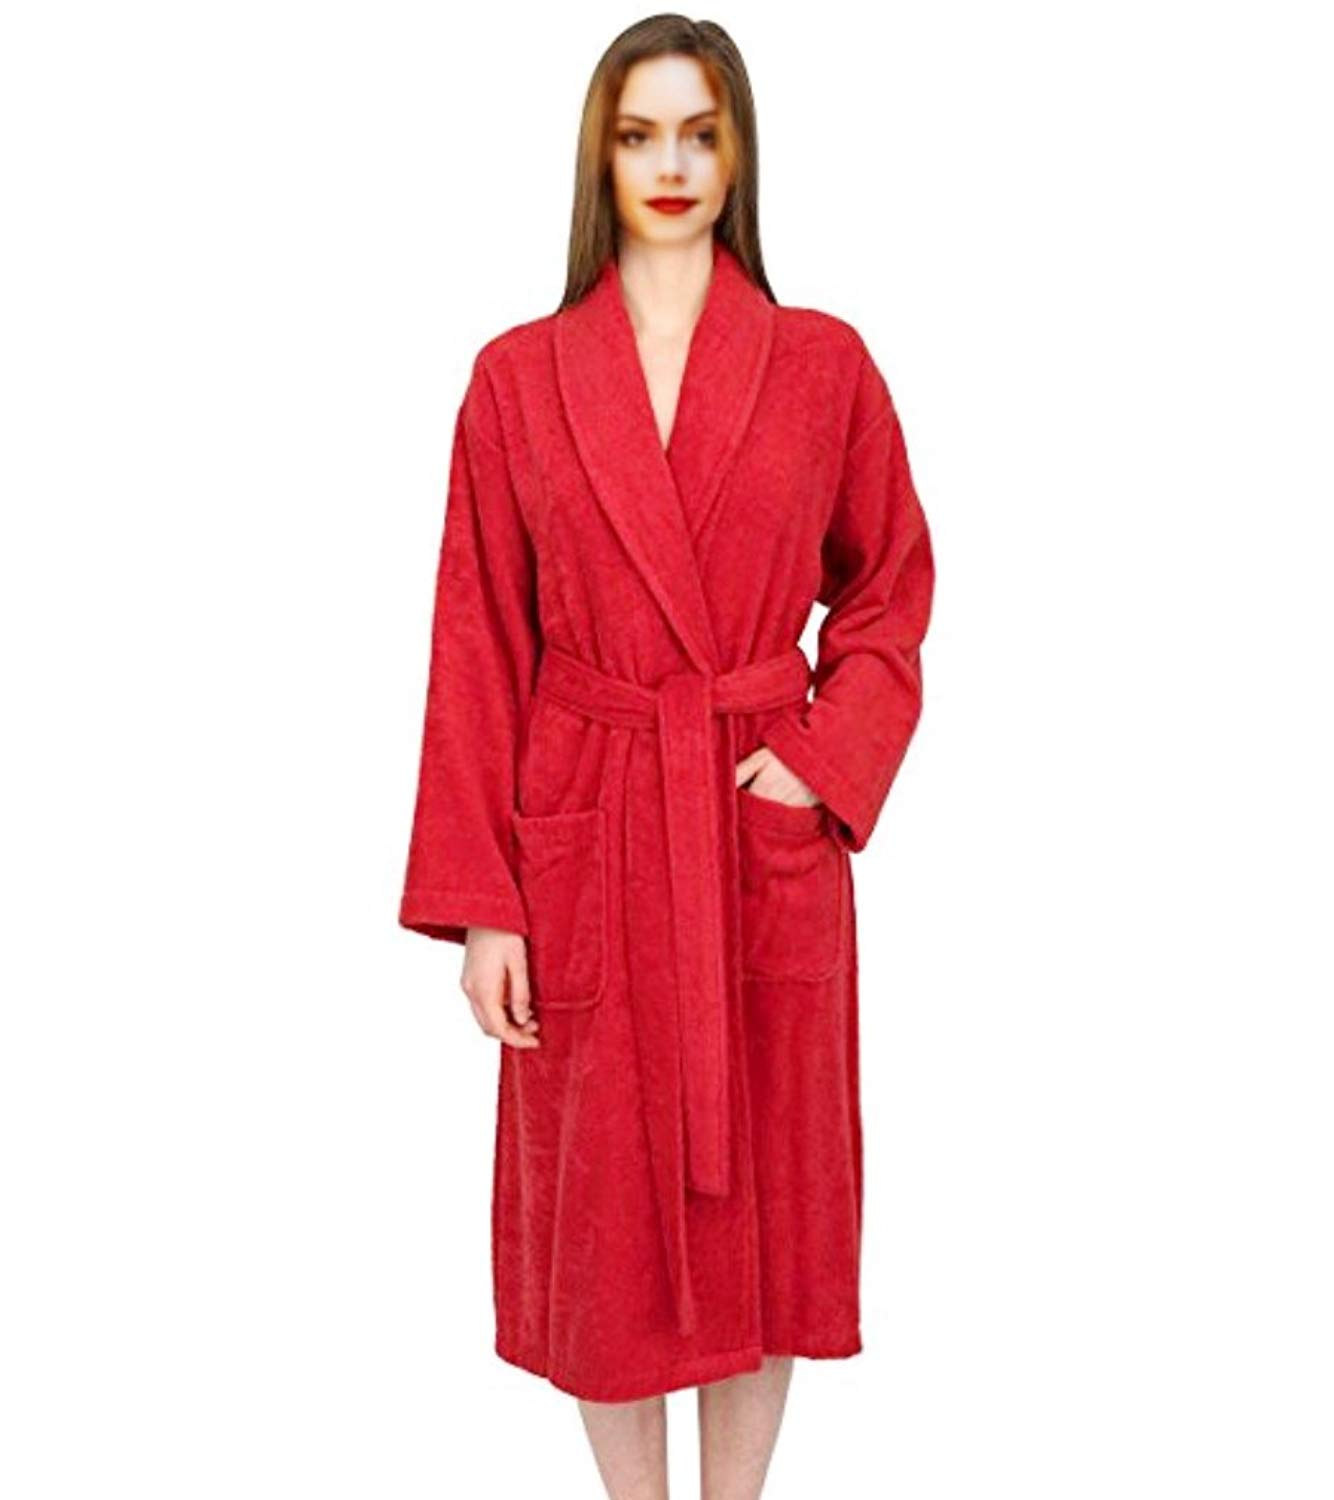 c6299fbae1 Get Quotations · ELEGANI Women s Terry-Robe